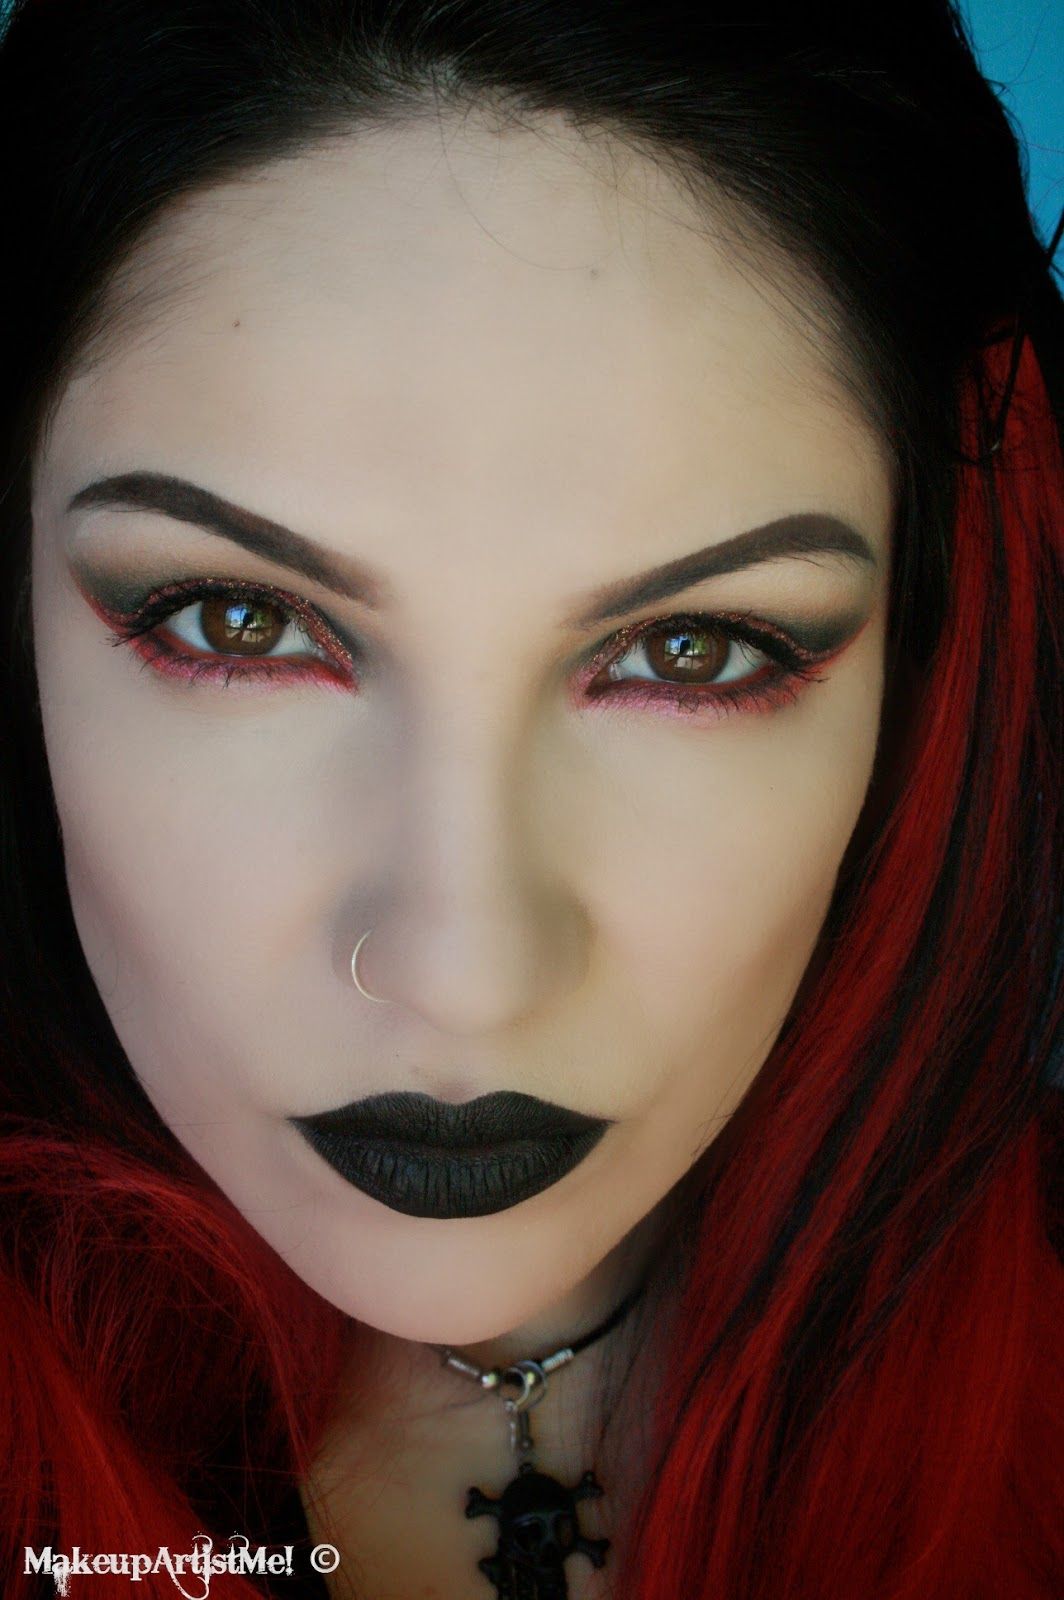 Make Up Application: Make-up Artist Me!: My Goth! Makeup Tutorial